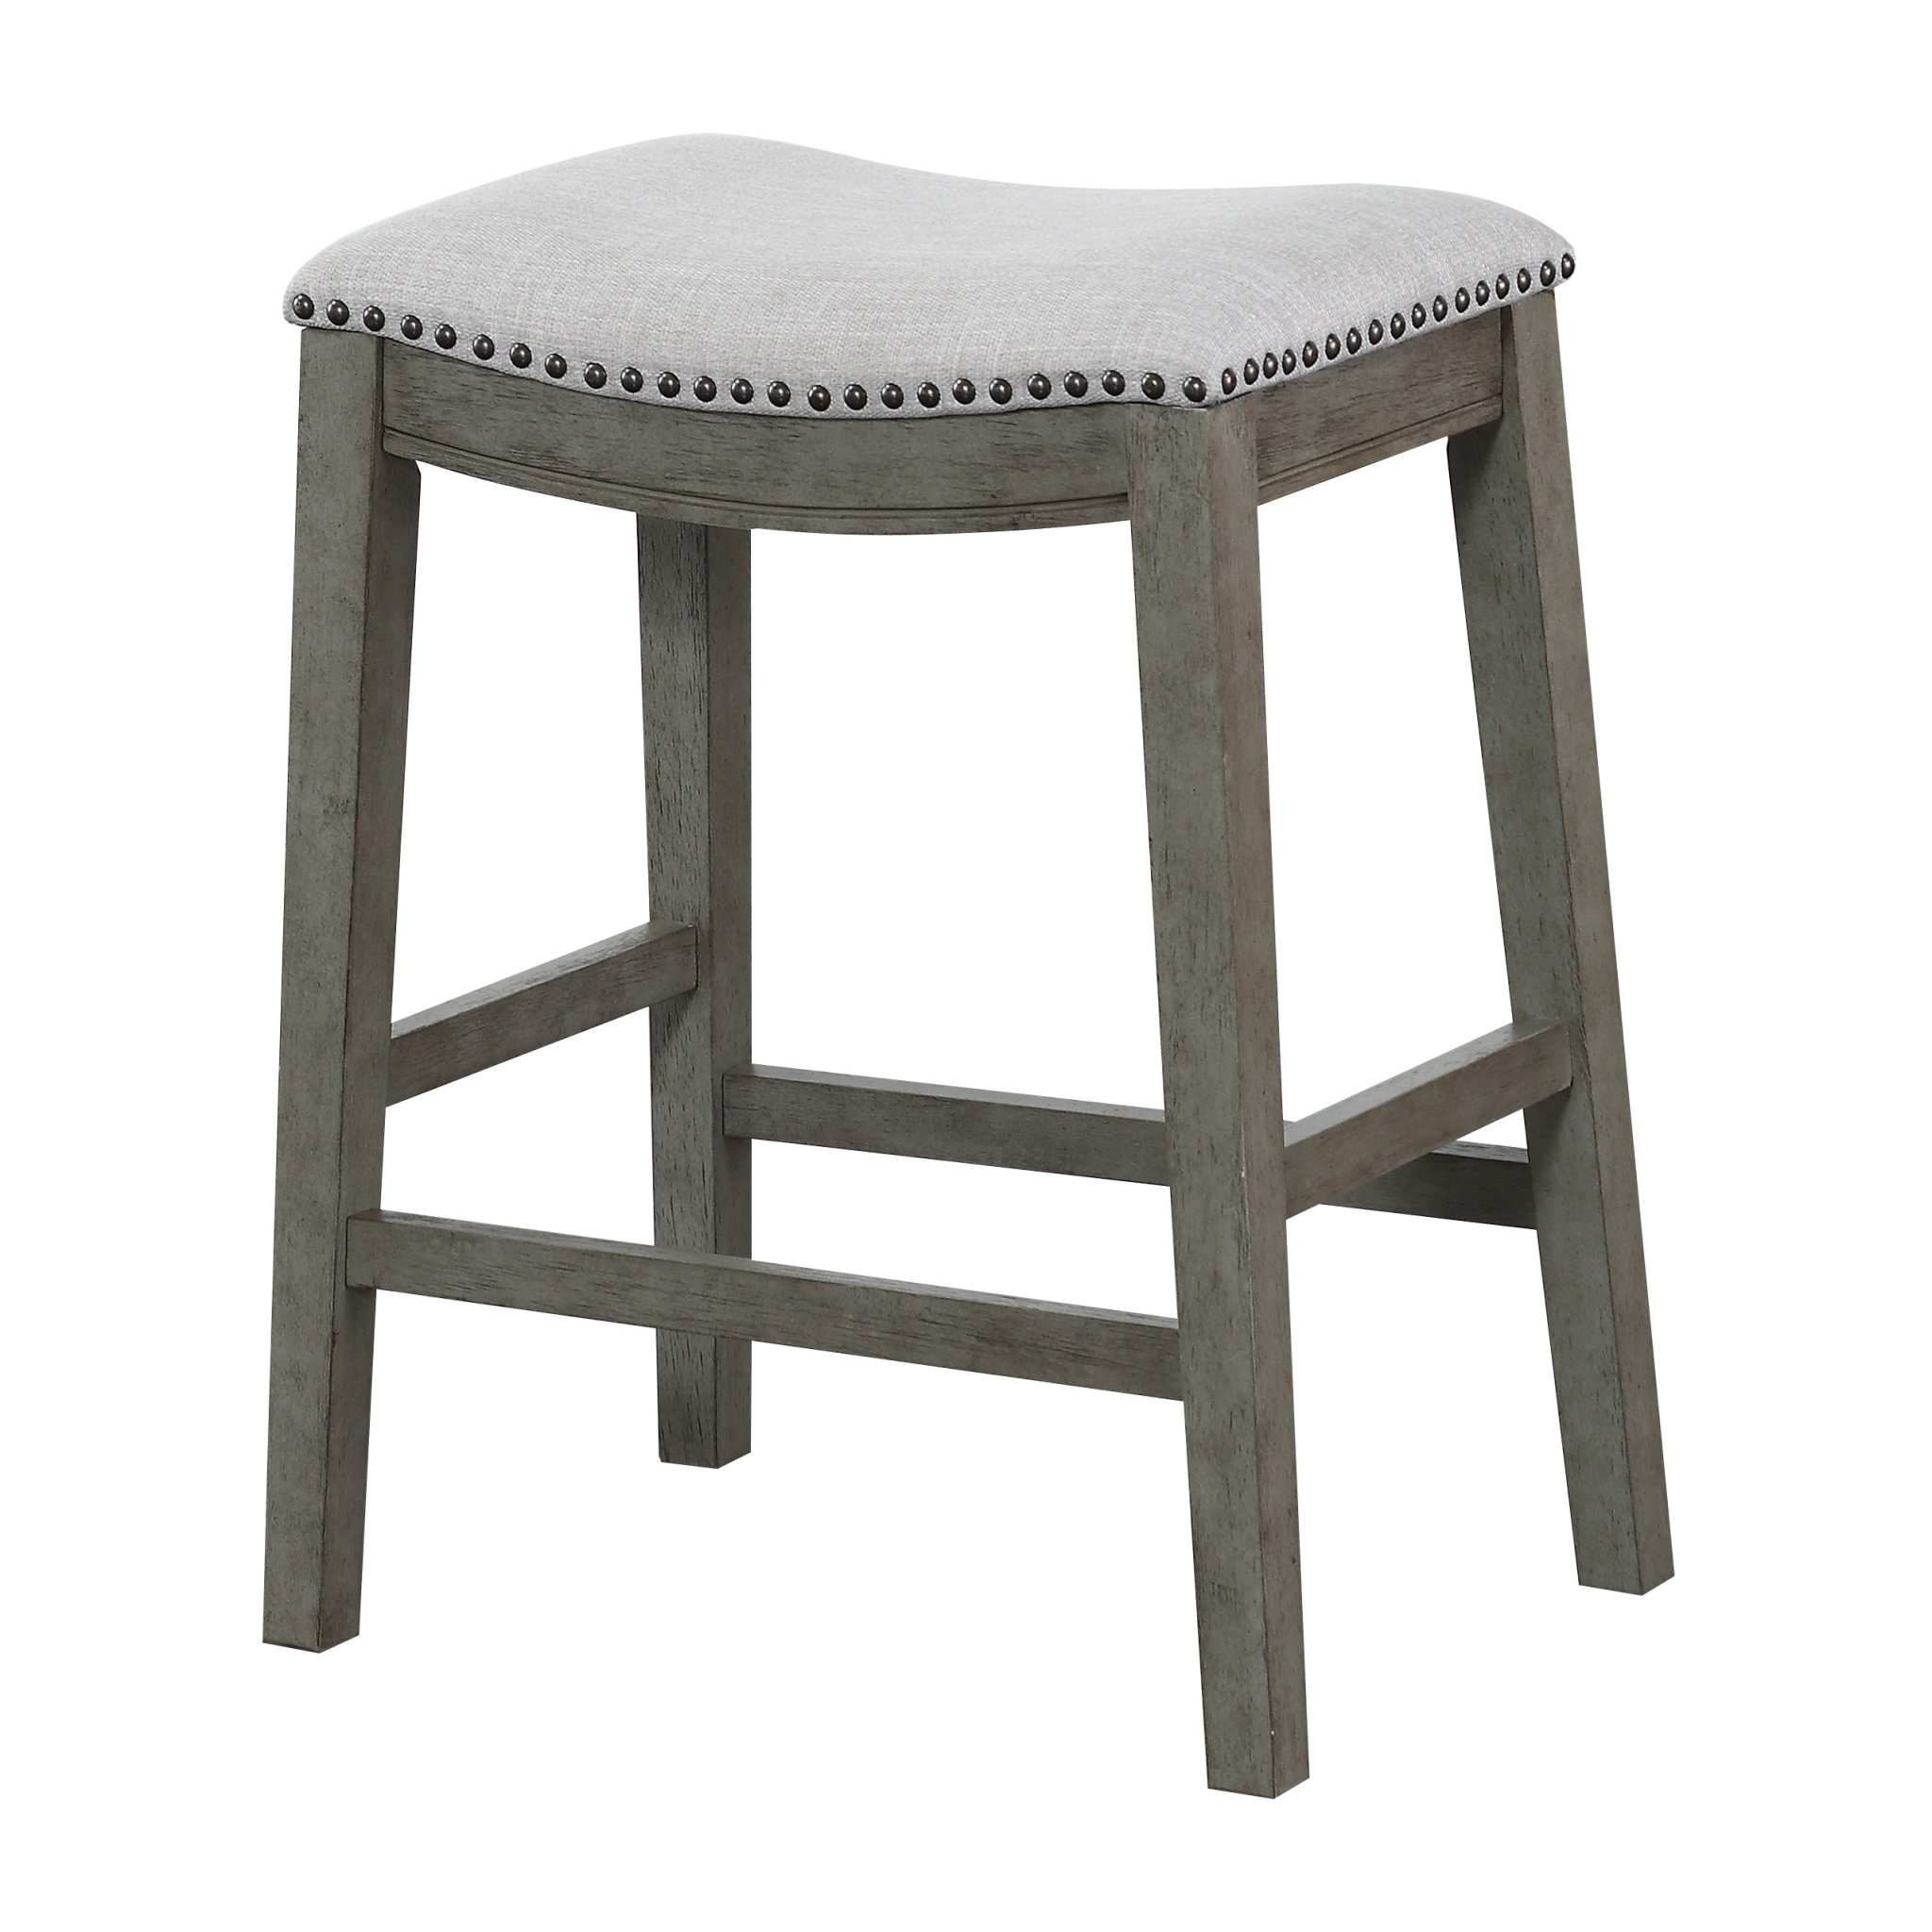 Office Star Saddle Stool with Antique Grey Base, 24-Inch, Grey Fabric by OSP Designs (Image #1)